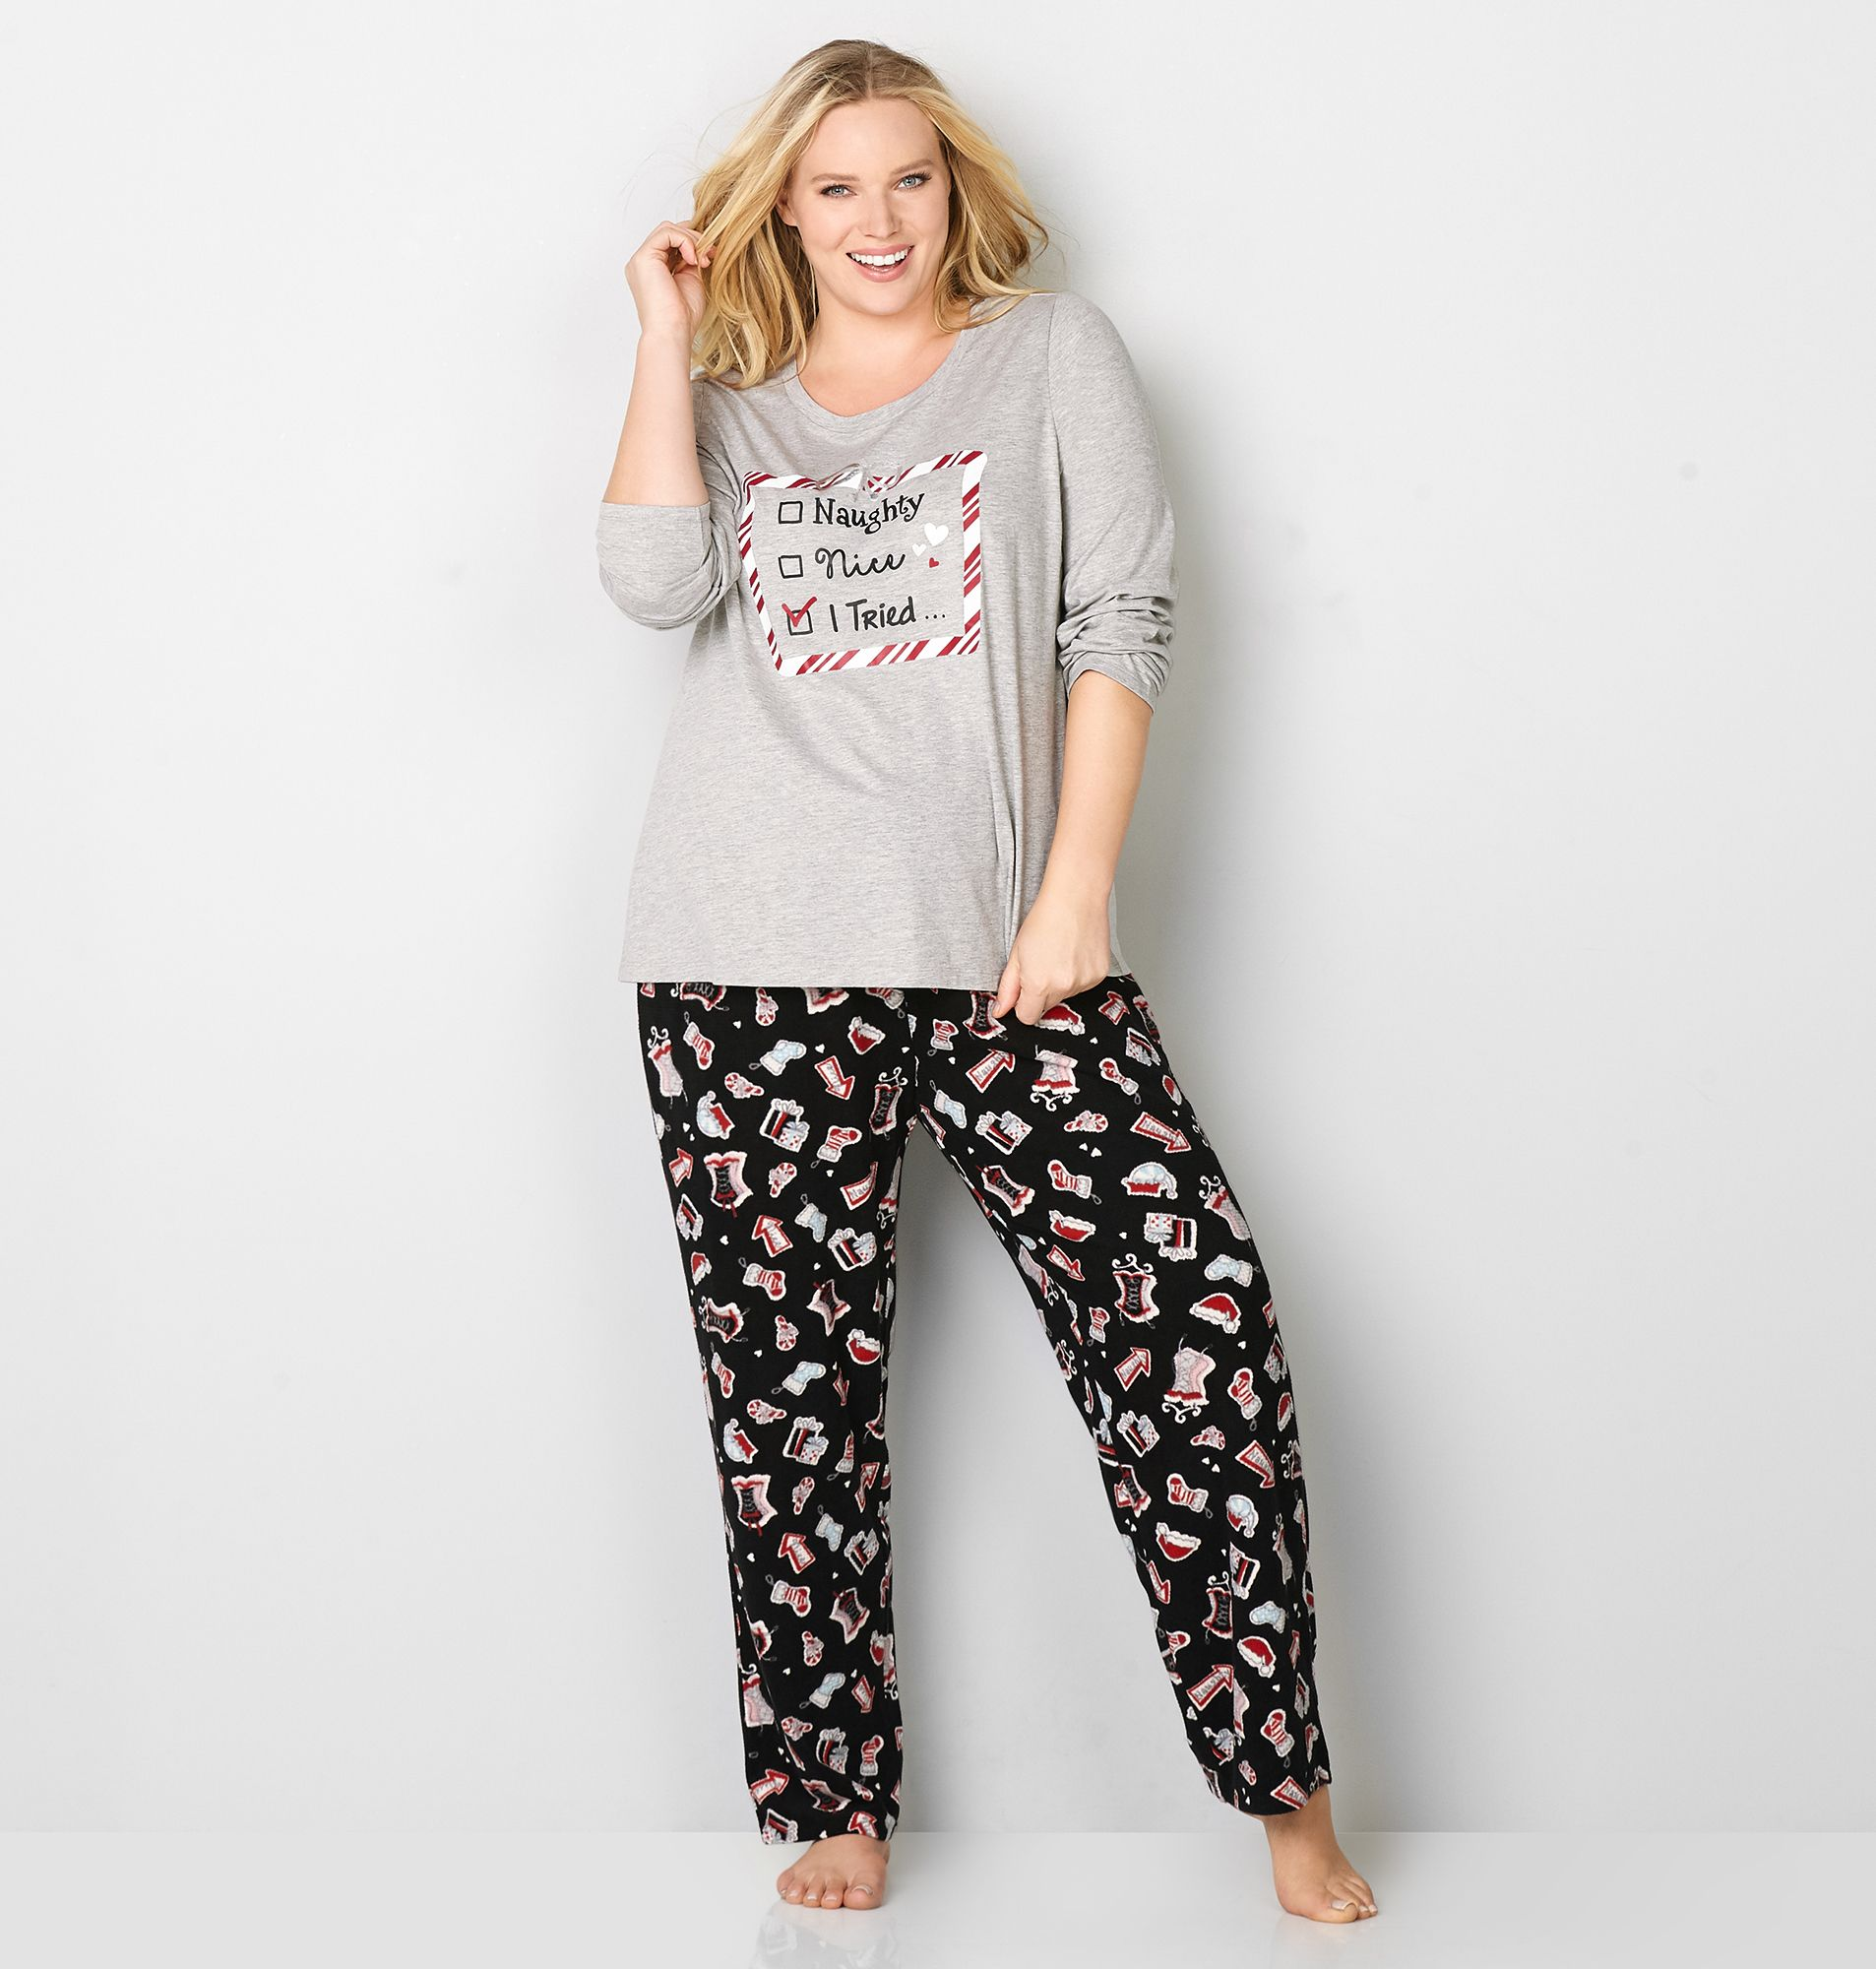 6b4802eade 17. New year eve pajamas for plus size women | Christmas Costumes ...